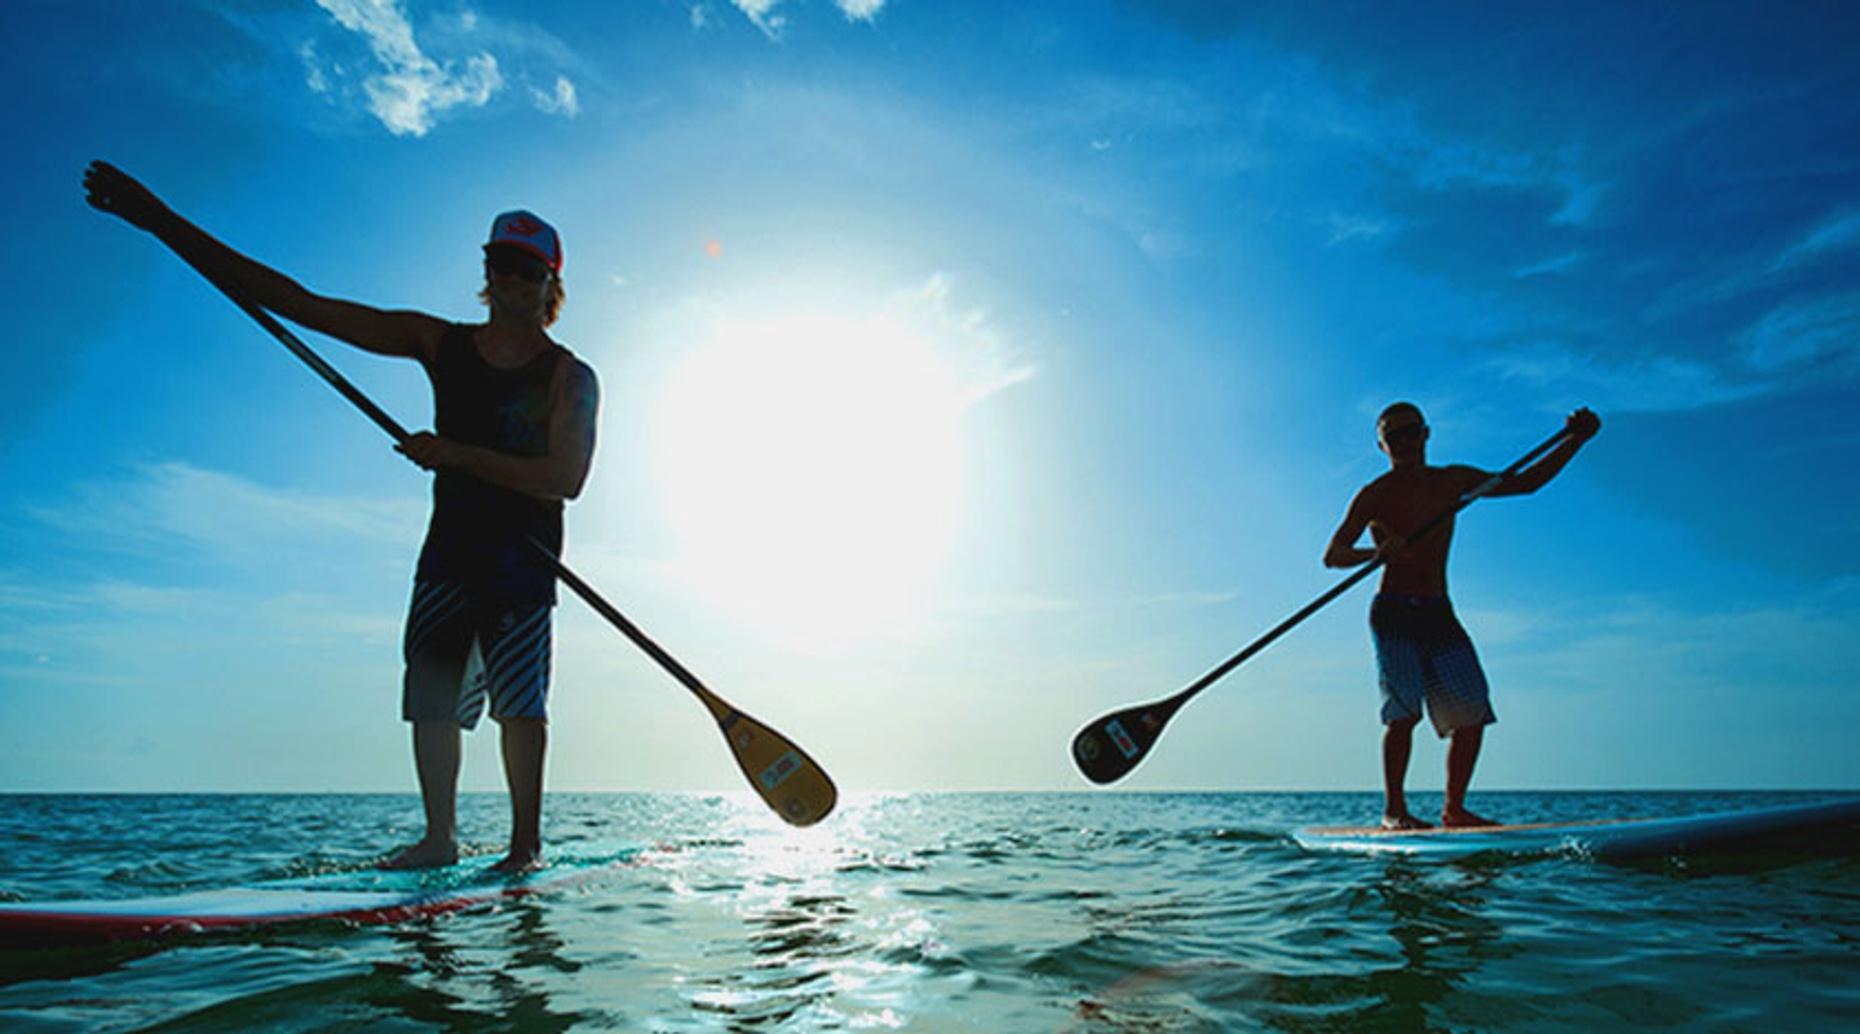 Hourly Stand-Up Paddleboard Rental in Redondo Beach